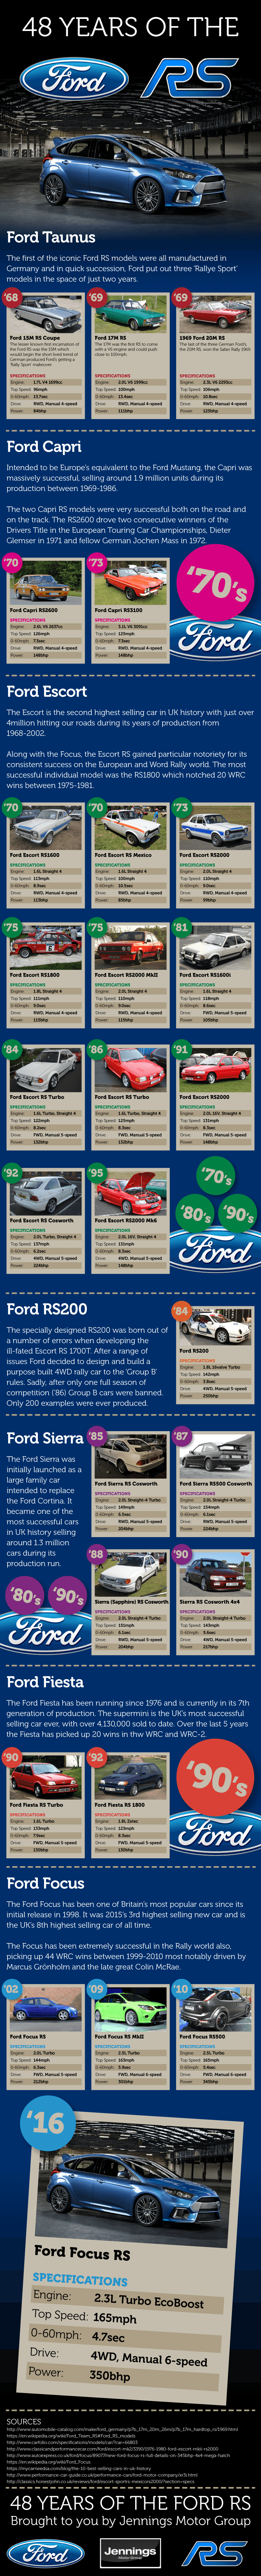 ford-rs-infographic